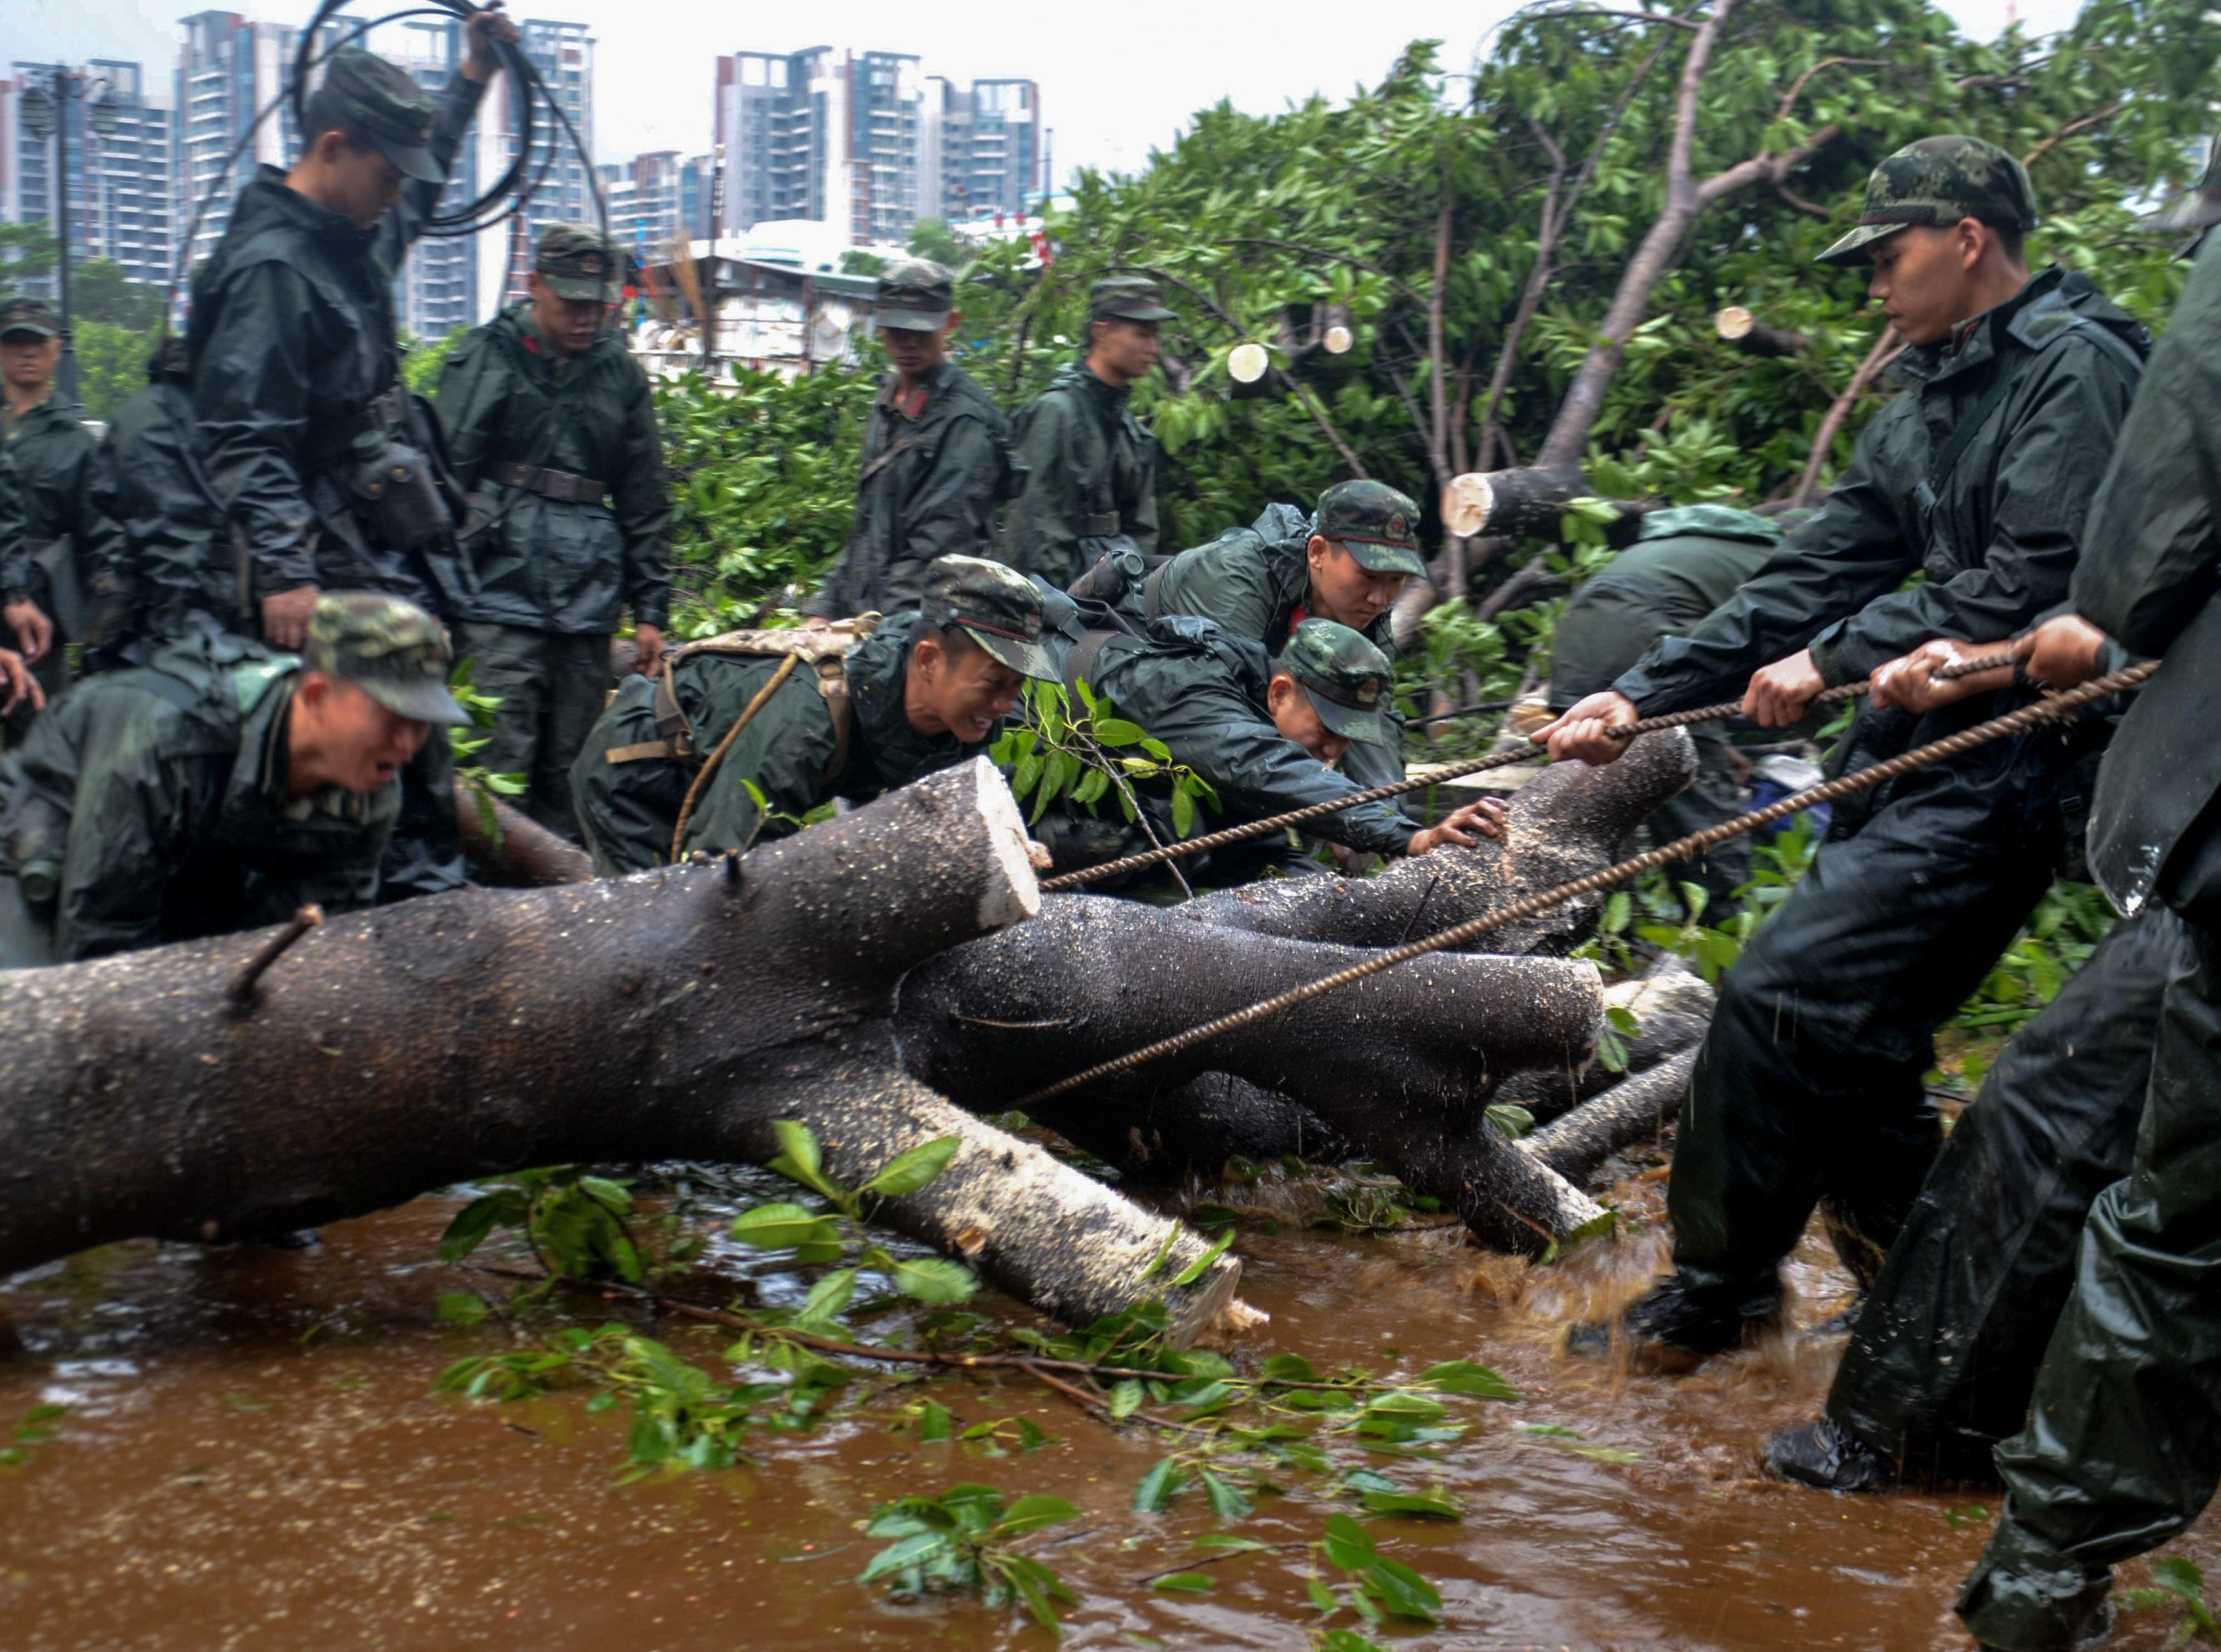 This photo taken on Sept. 17, 2018 shows Chinese paramilitary police officers clearing branches on a road, a day after Typhoon Mangkhut hit in Zhongshan, in China's southern Guangdong province.